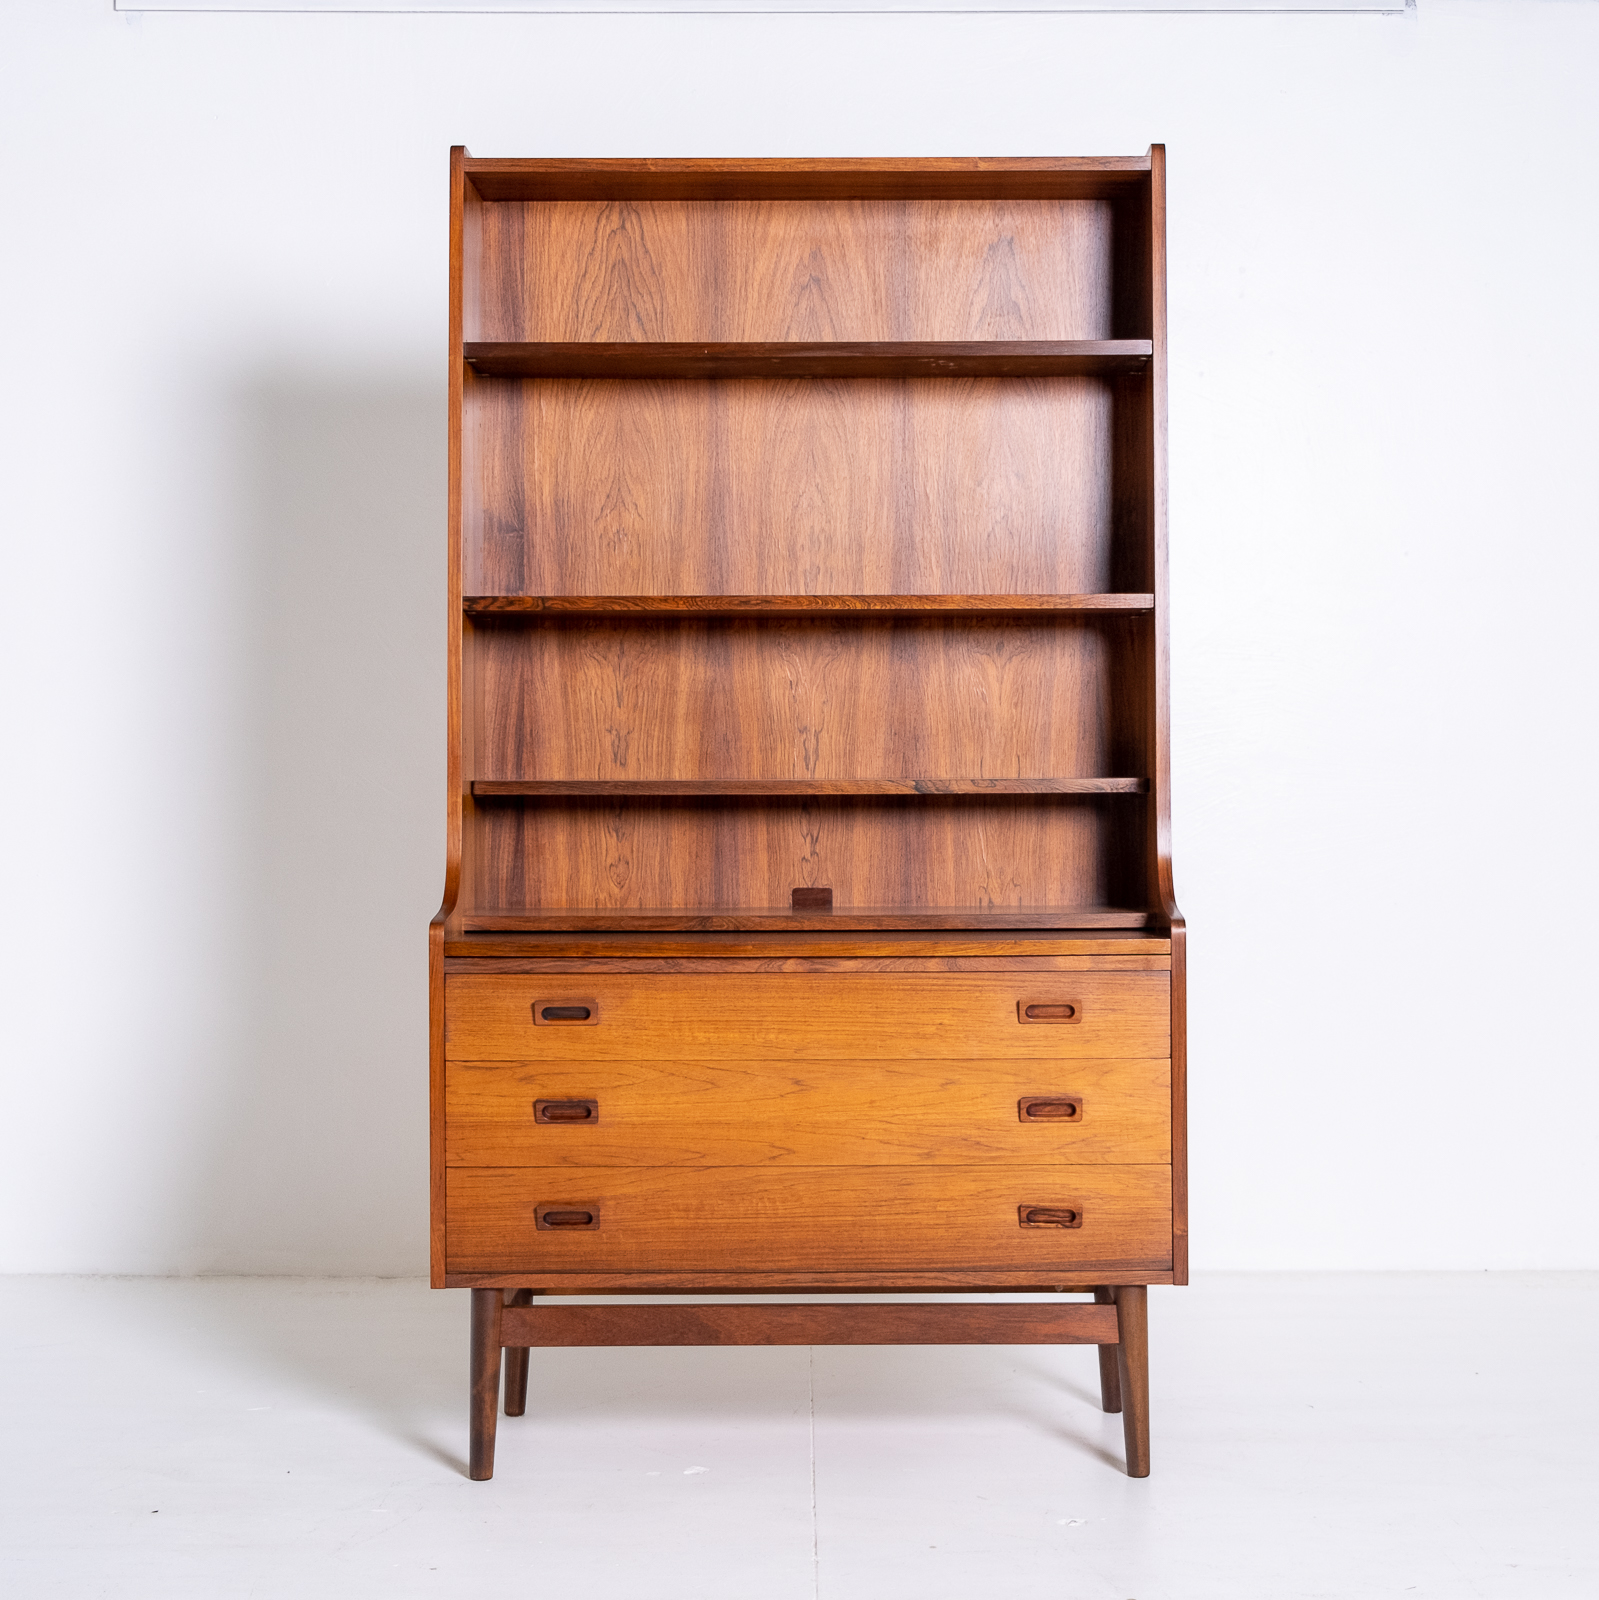 Bookshelf With Drawers In Rosewood, 1960s, Denmark 01